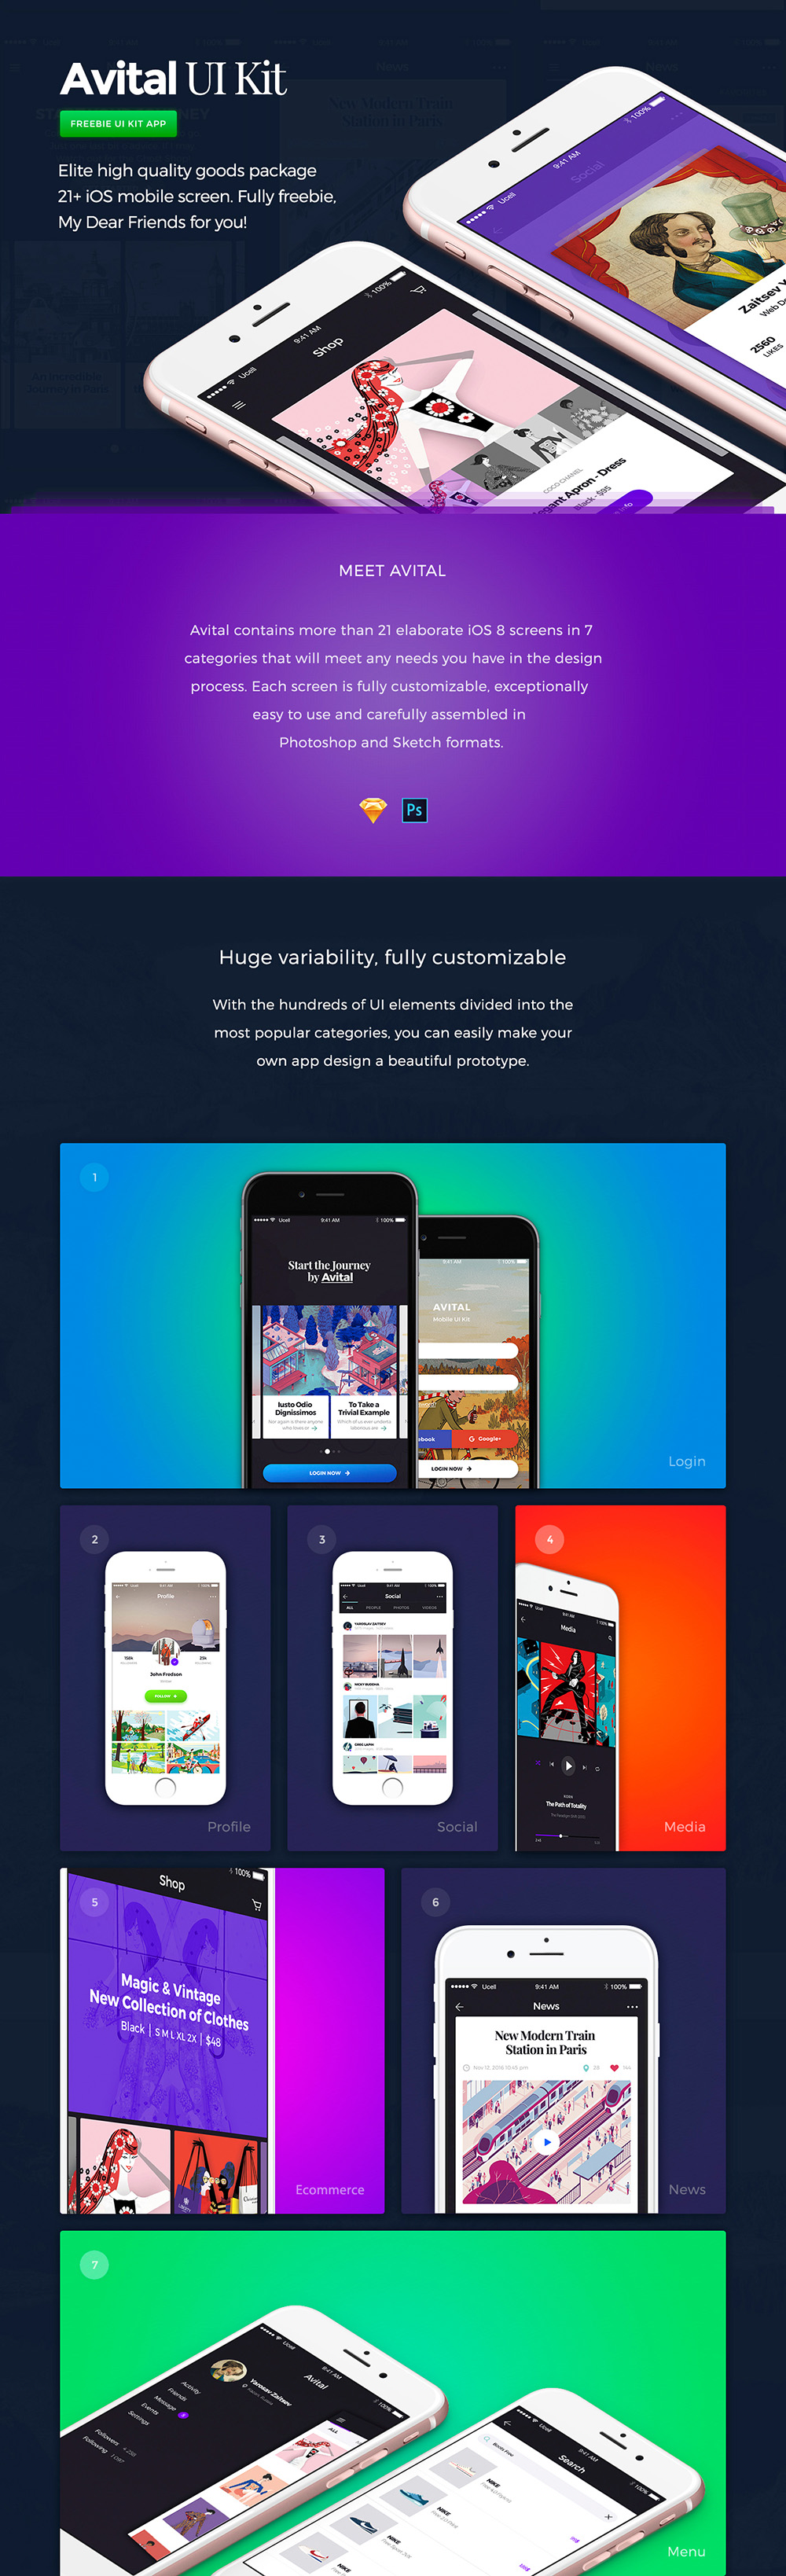 Free Avital UI Kit with Plus 21 iOS Mobile Screen-1